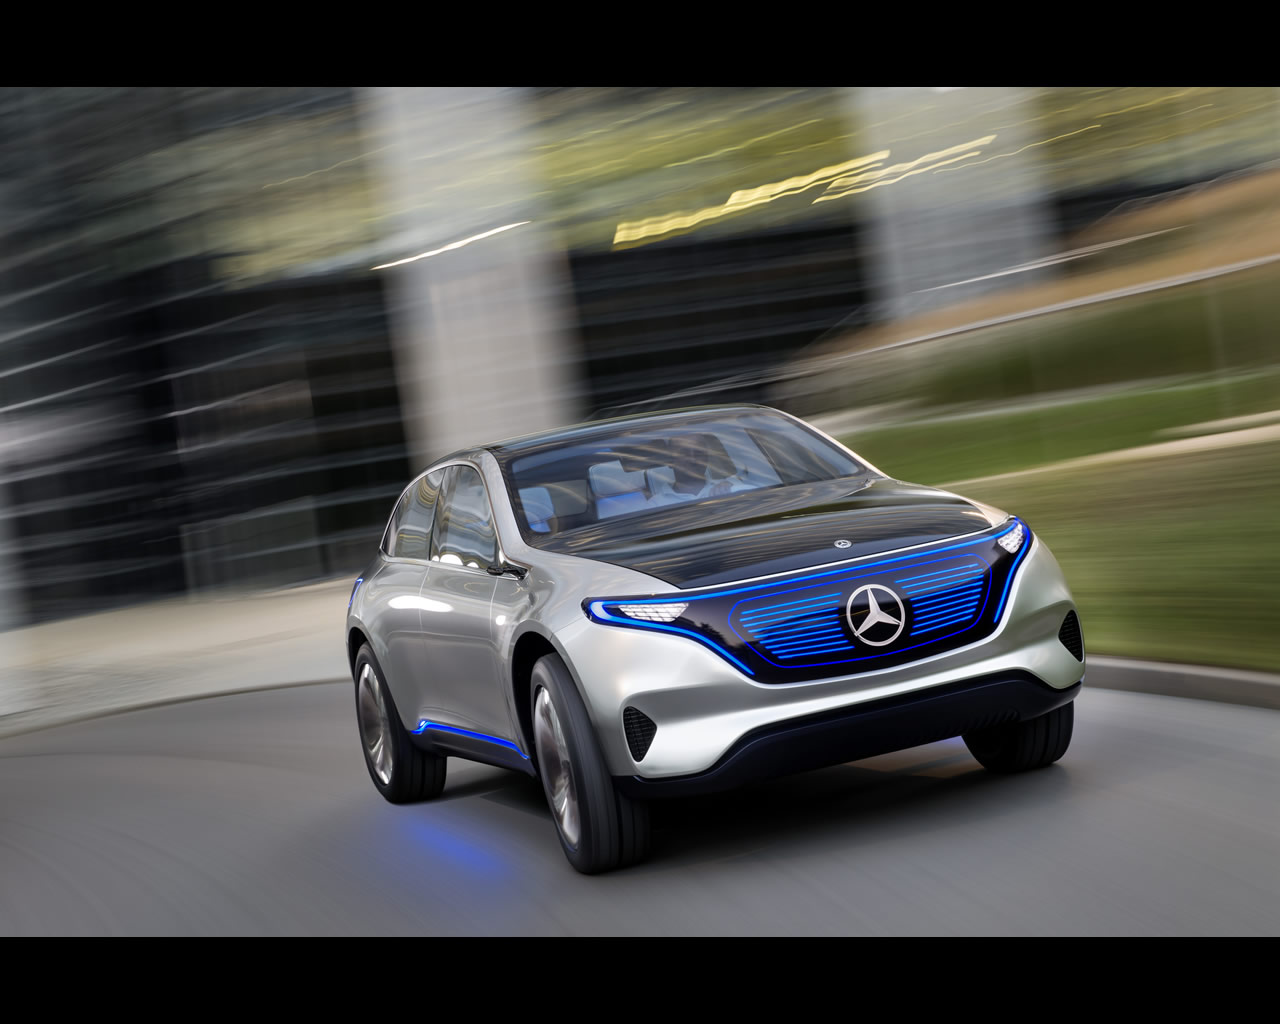 Mercedes benz eq pure electric suv coup concept 2016 for Mercedes benz new car prices